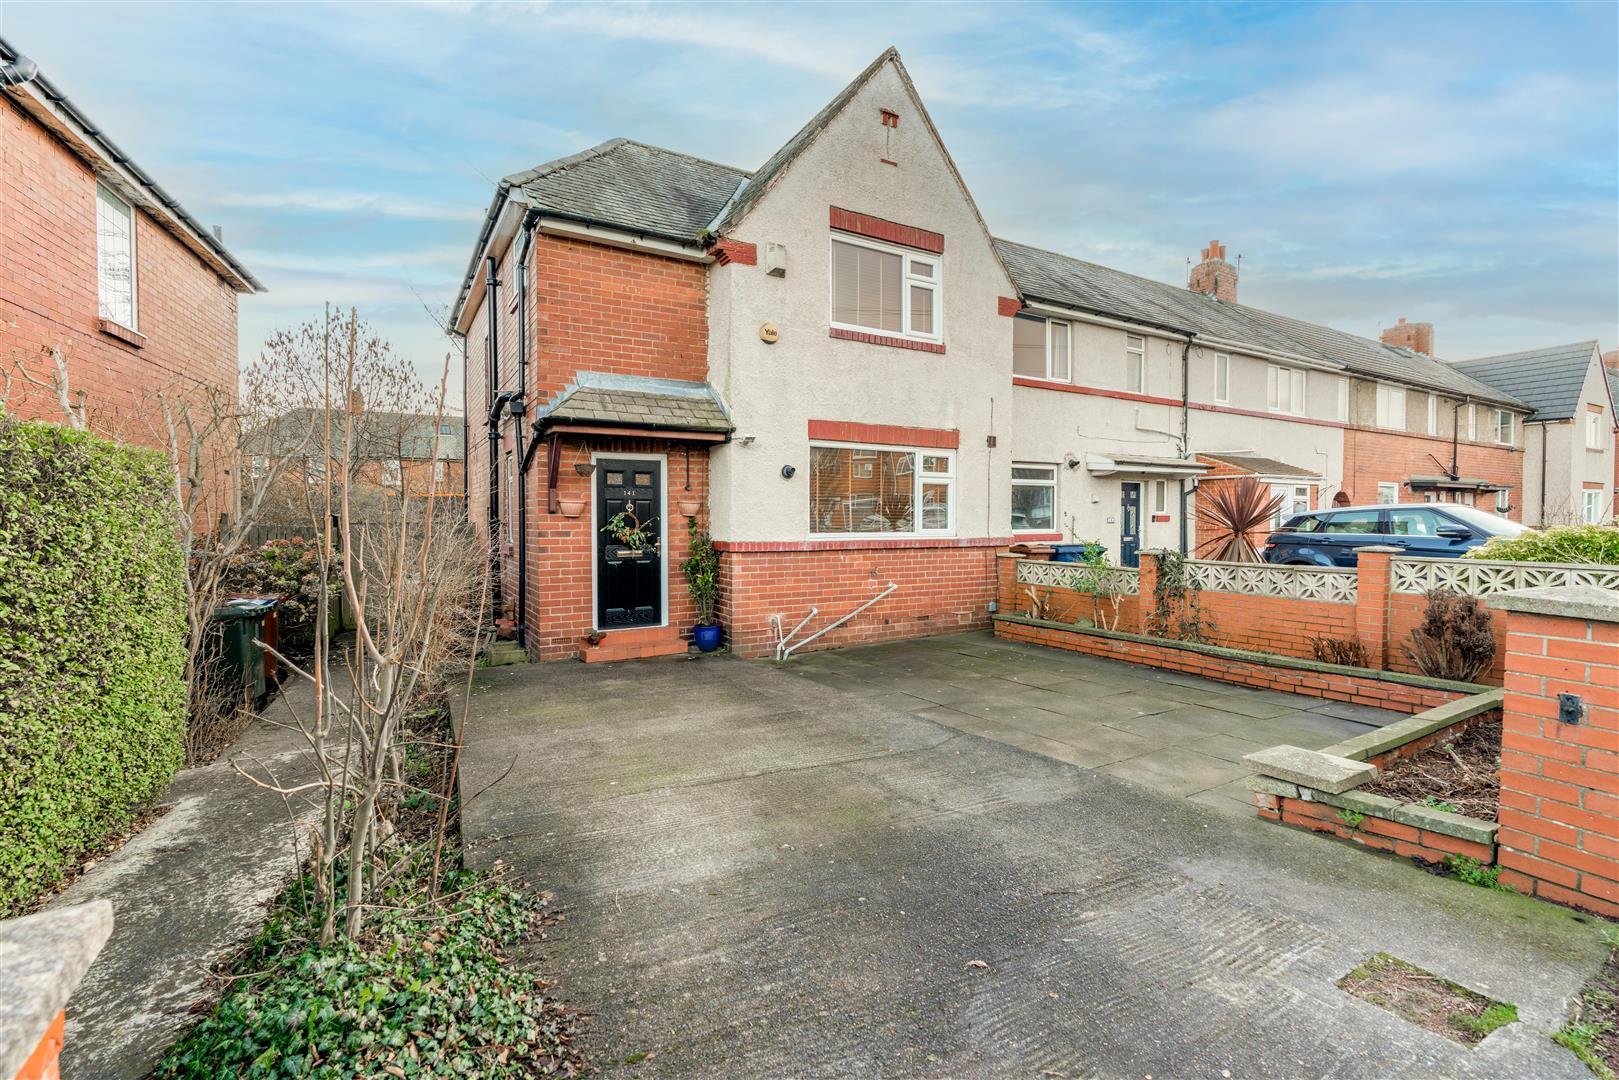 3 bed semi-detached house for sale in Holystone Crescent, High Heaton  - Property Image 1